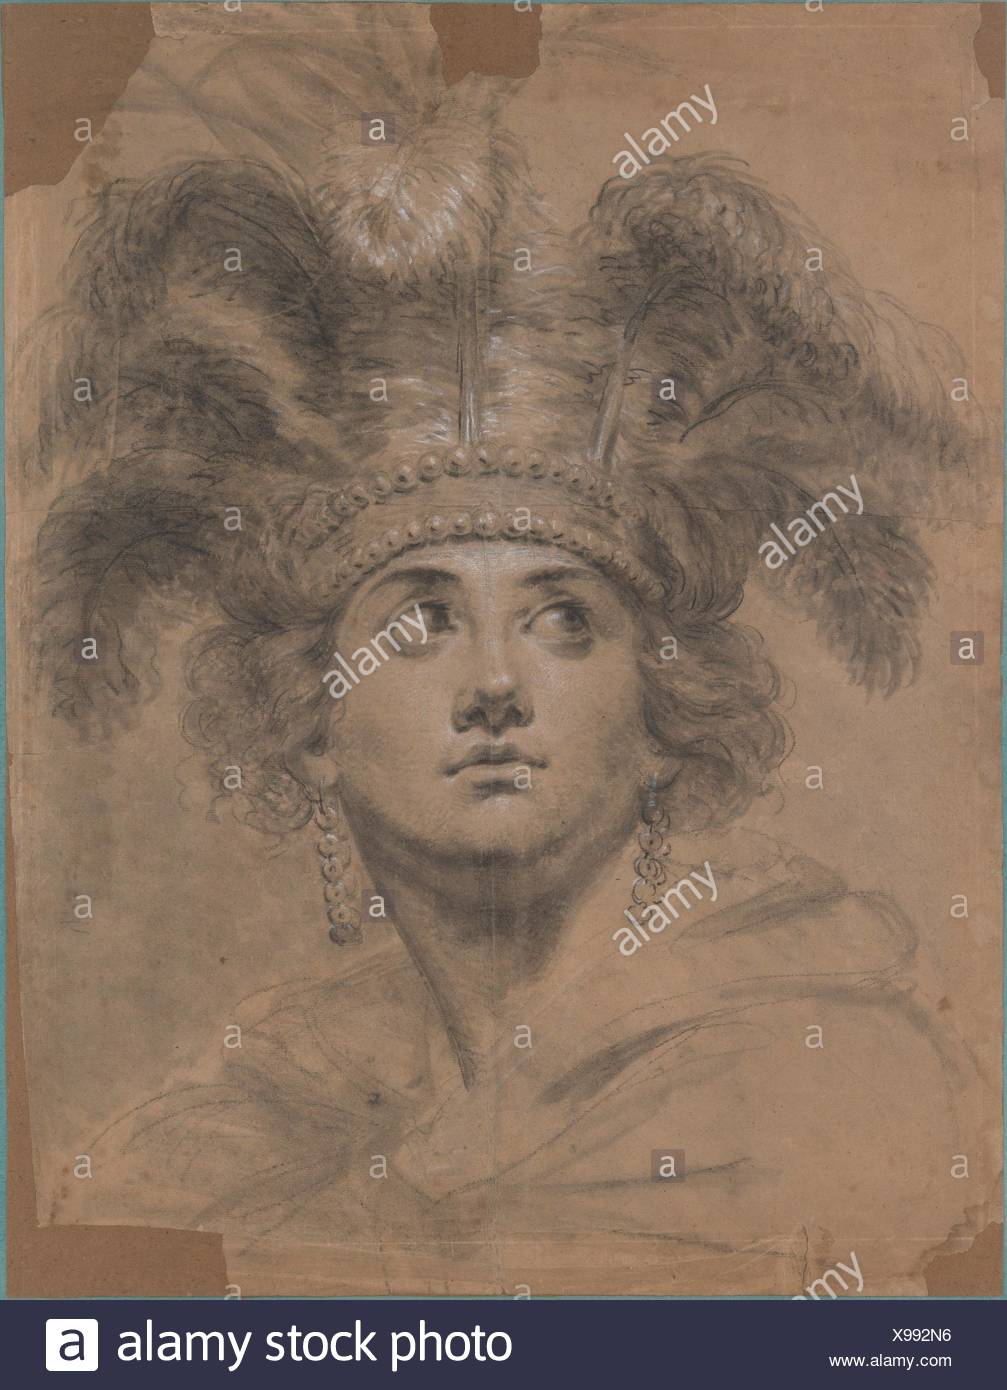 Head of a woman as America. Artist: Antoine Vestier (French, Avallon 1740-1824 Paris); Date: n.d; Medium: Black crayon, heightened with white chalk - Stock Image